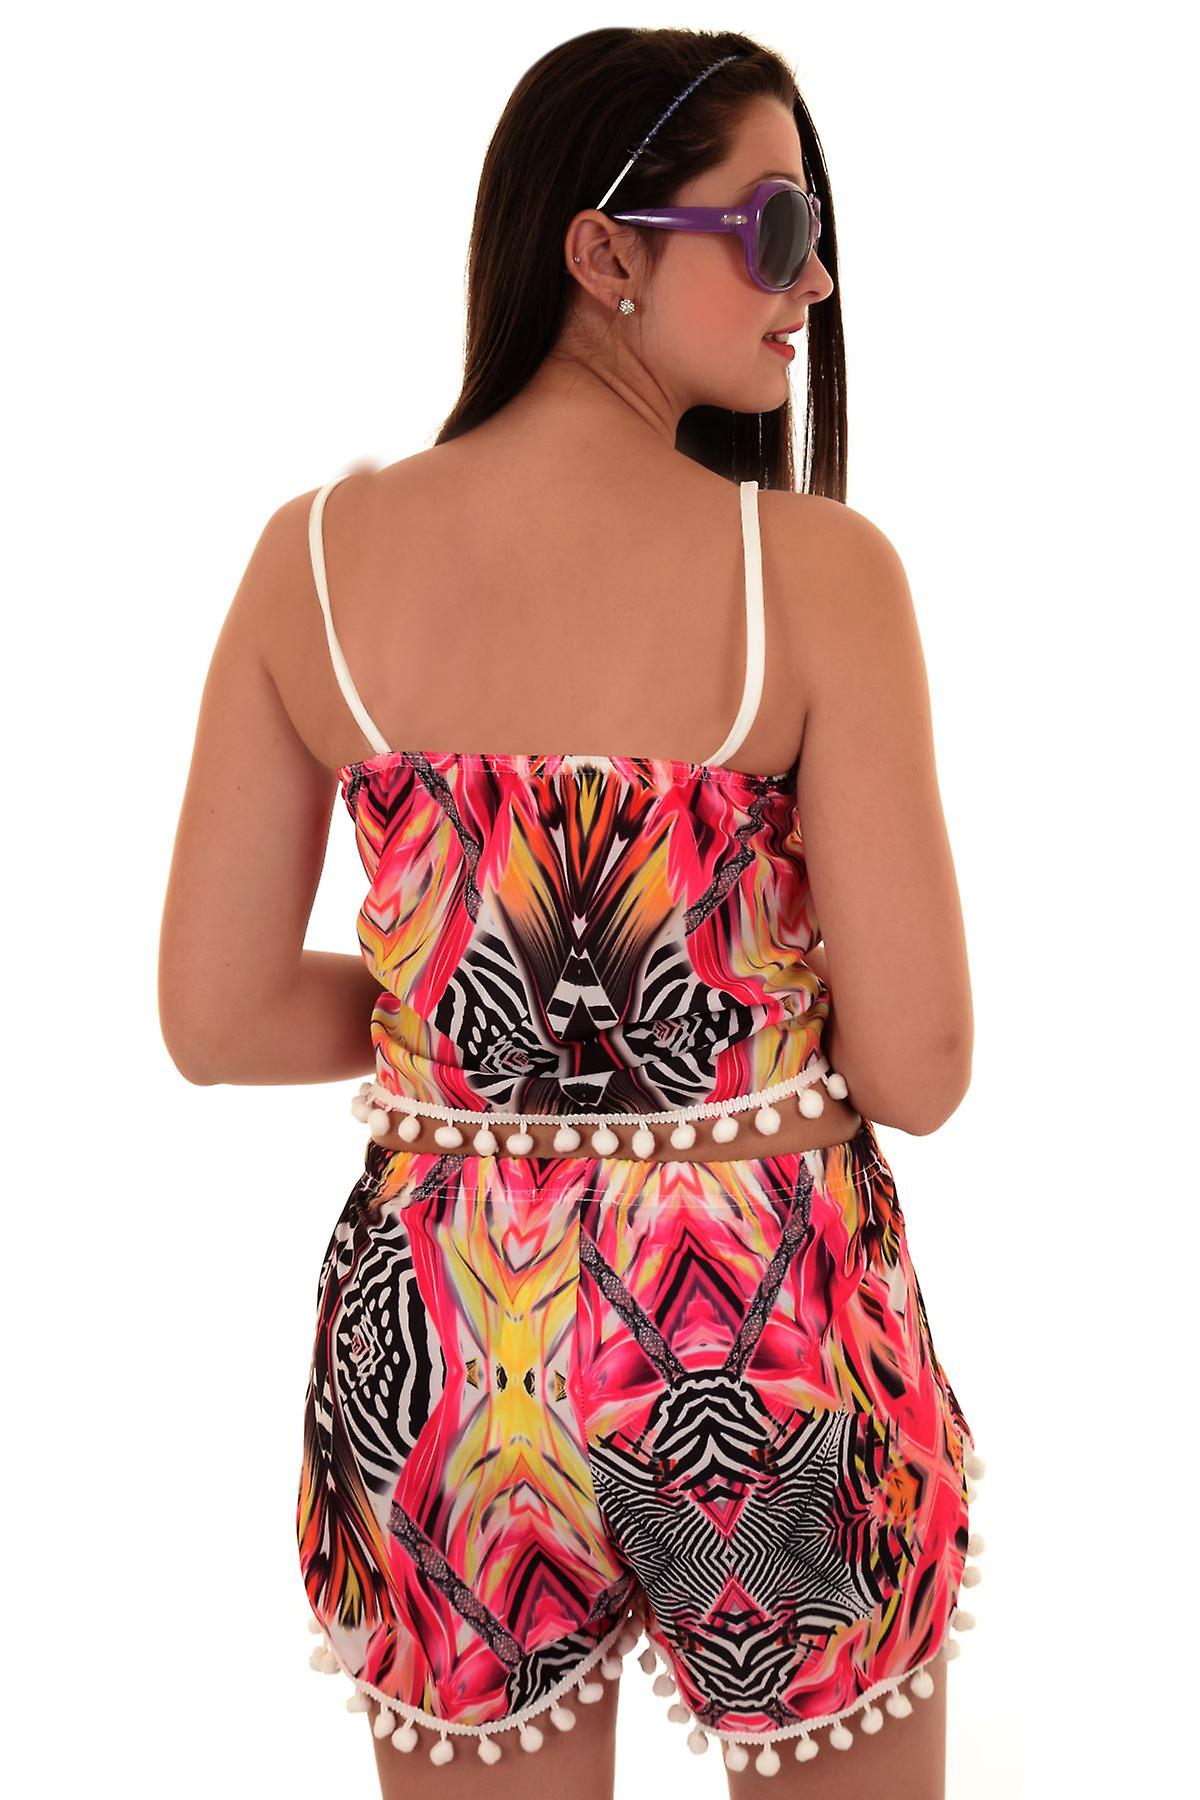 Ladies Bobble Trim Animal Aztec Print Women's Shorts Cami Crop Top Vest Set